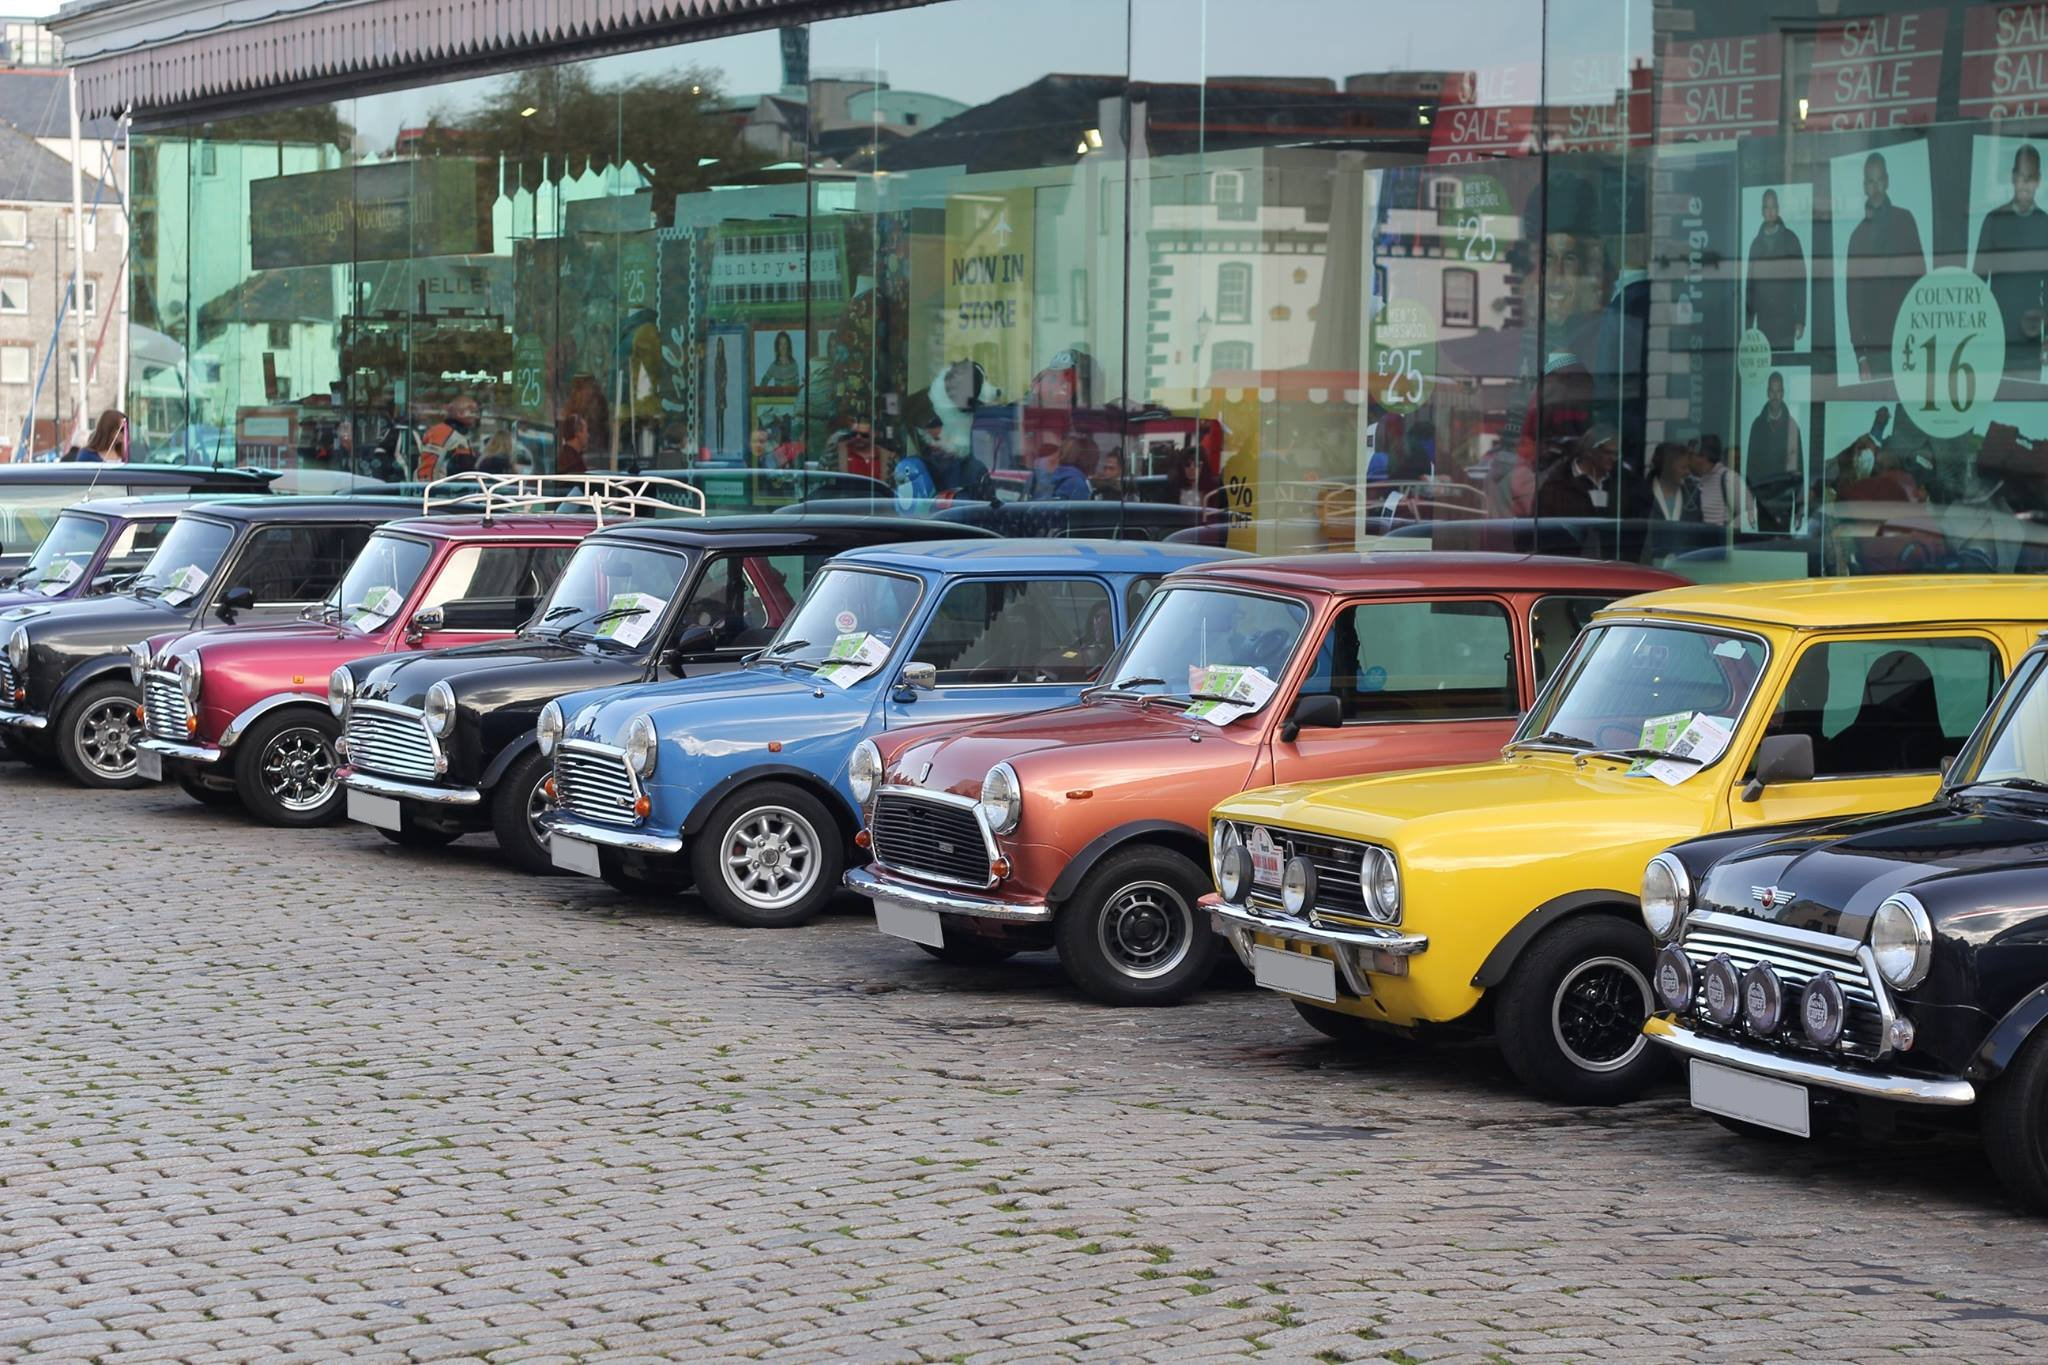 Minis everywhere